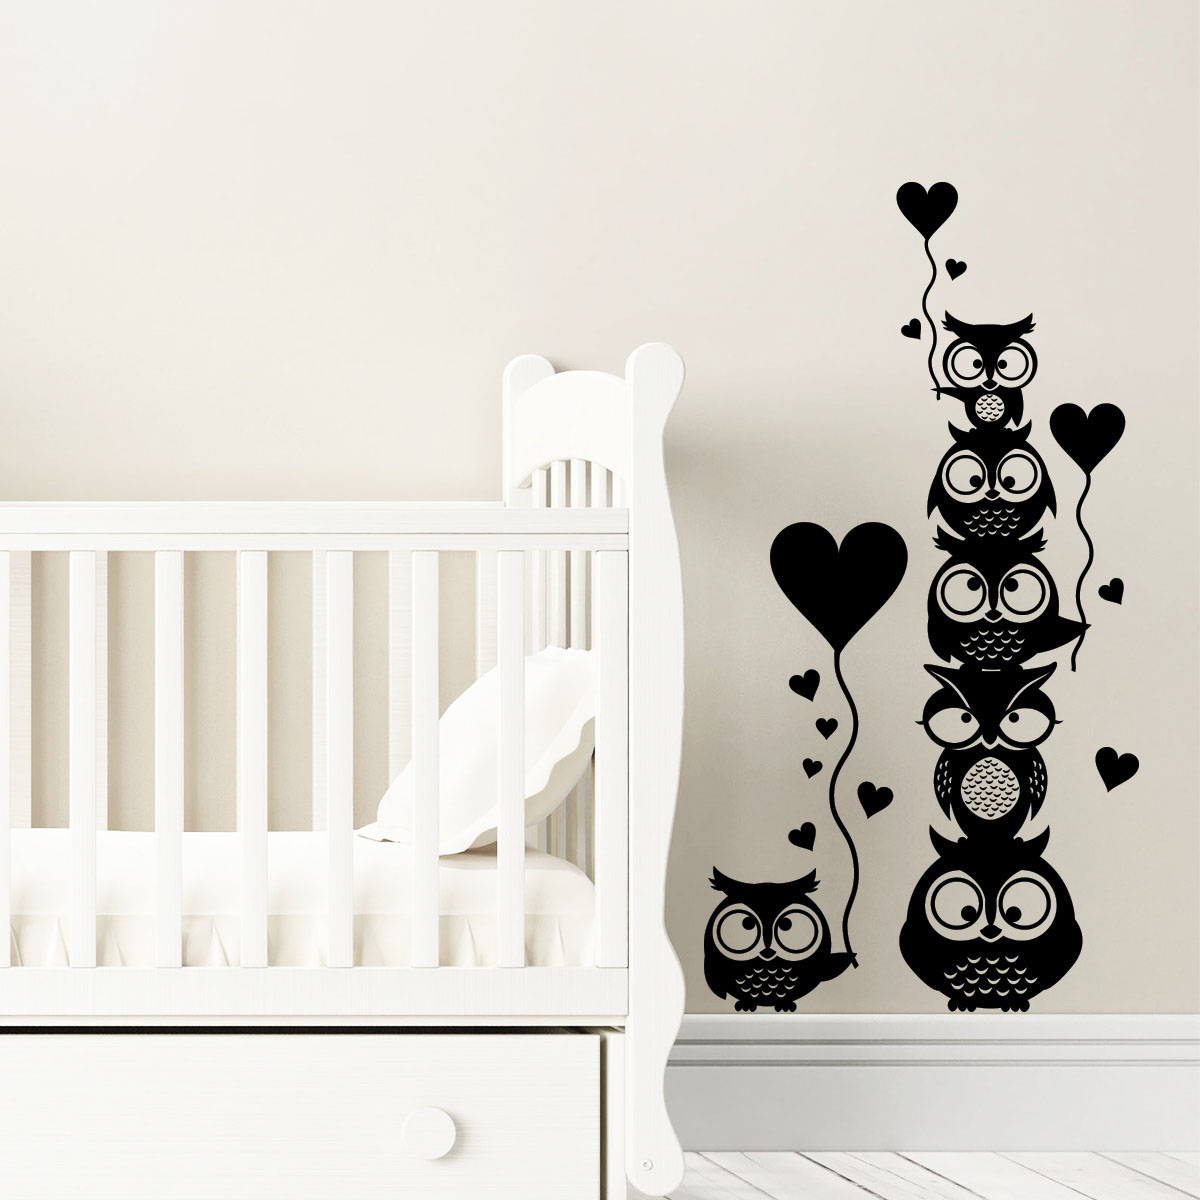 sticker les hiboux de l 39 amour stickers animaux oiseaux ambiance sticker. Black Bedroom Furniture Sets. Home Design Ideas